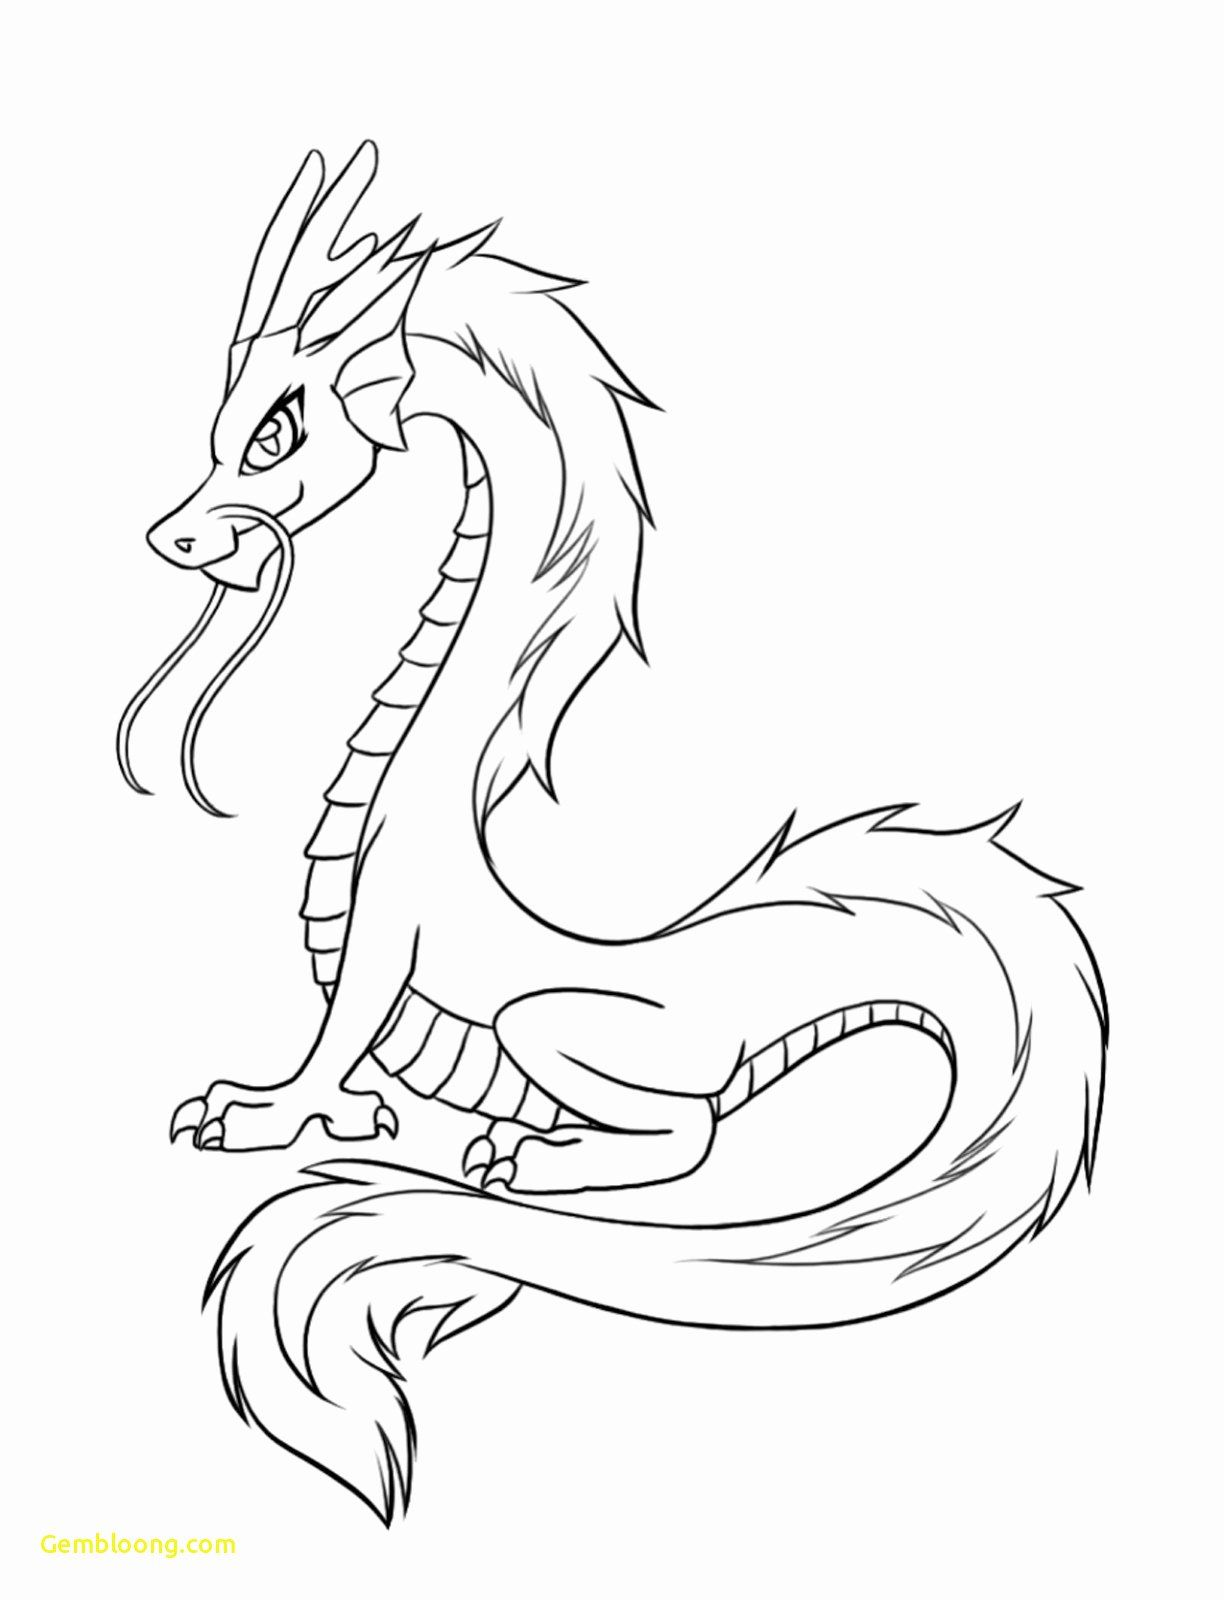 Komodo Dragon Coloring Page New Coloring Pages Dragon Coloring Pages For Adults Baby In 2020 Dragon Coloring Page Dragon Drawing Easy Dragon Drawings